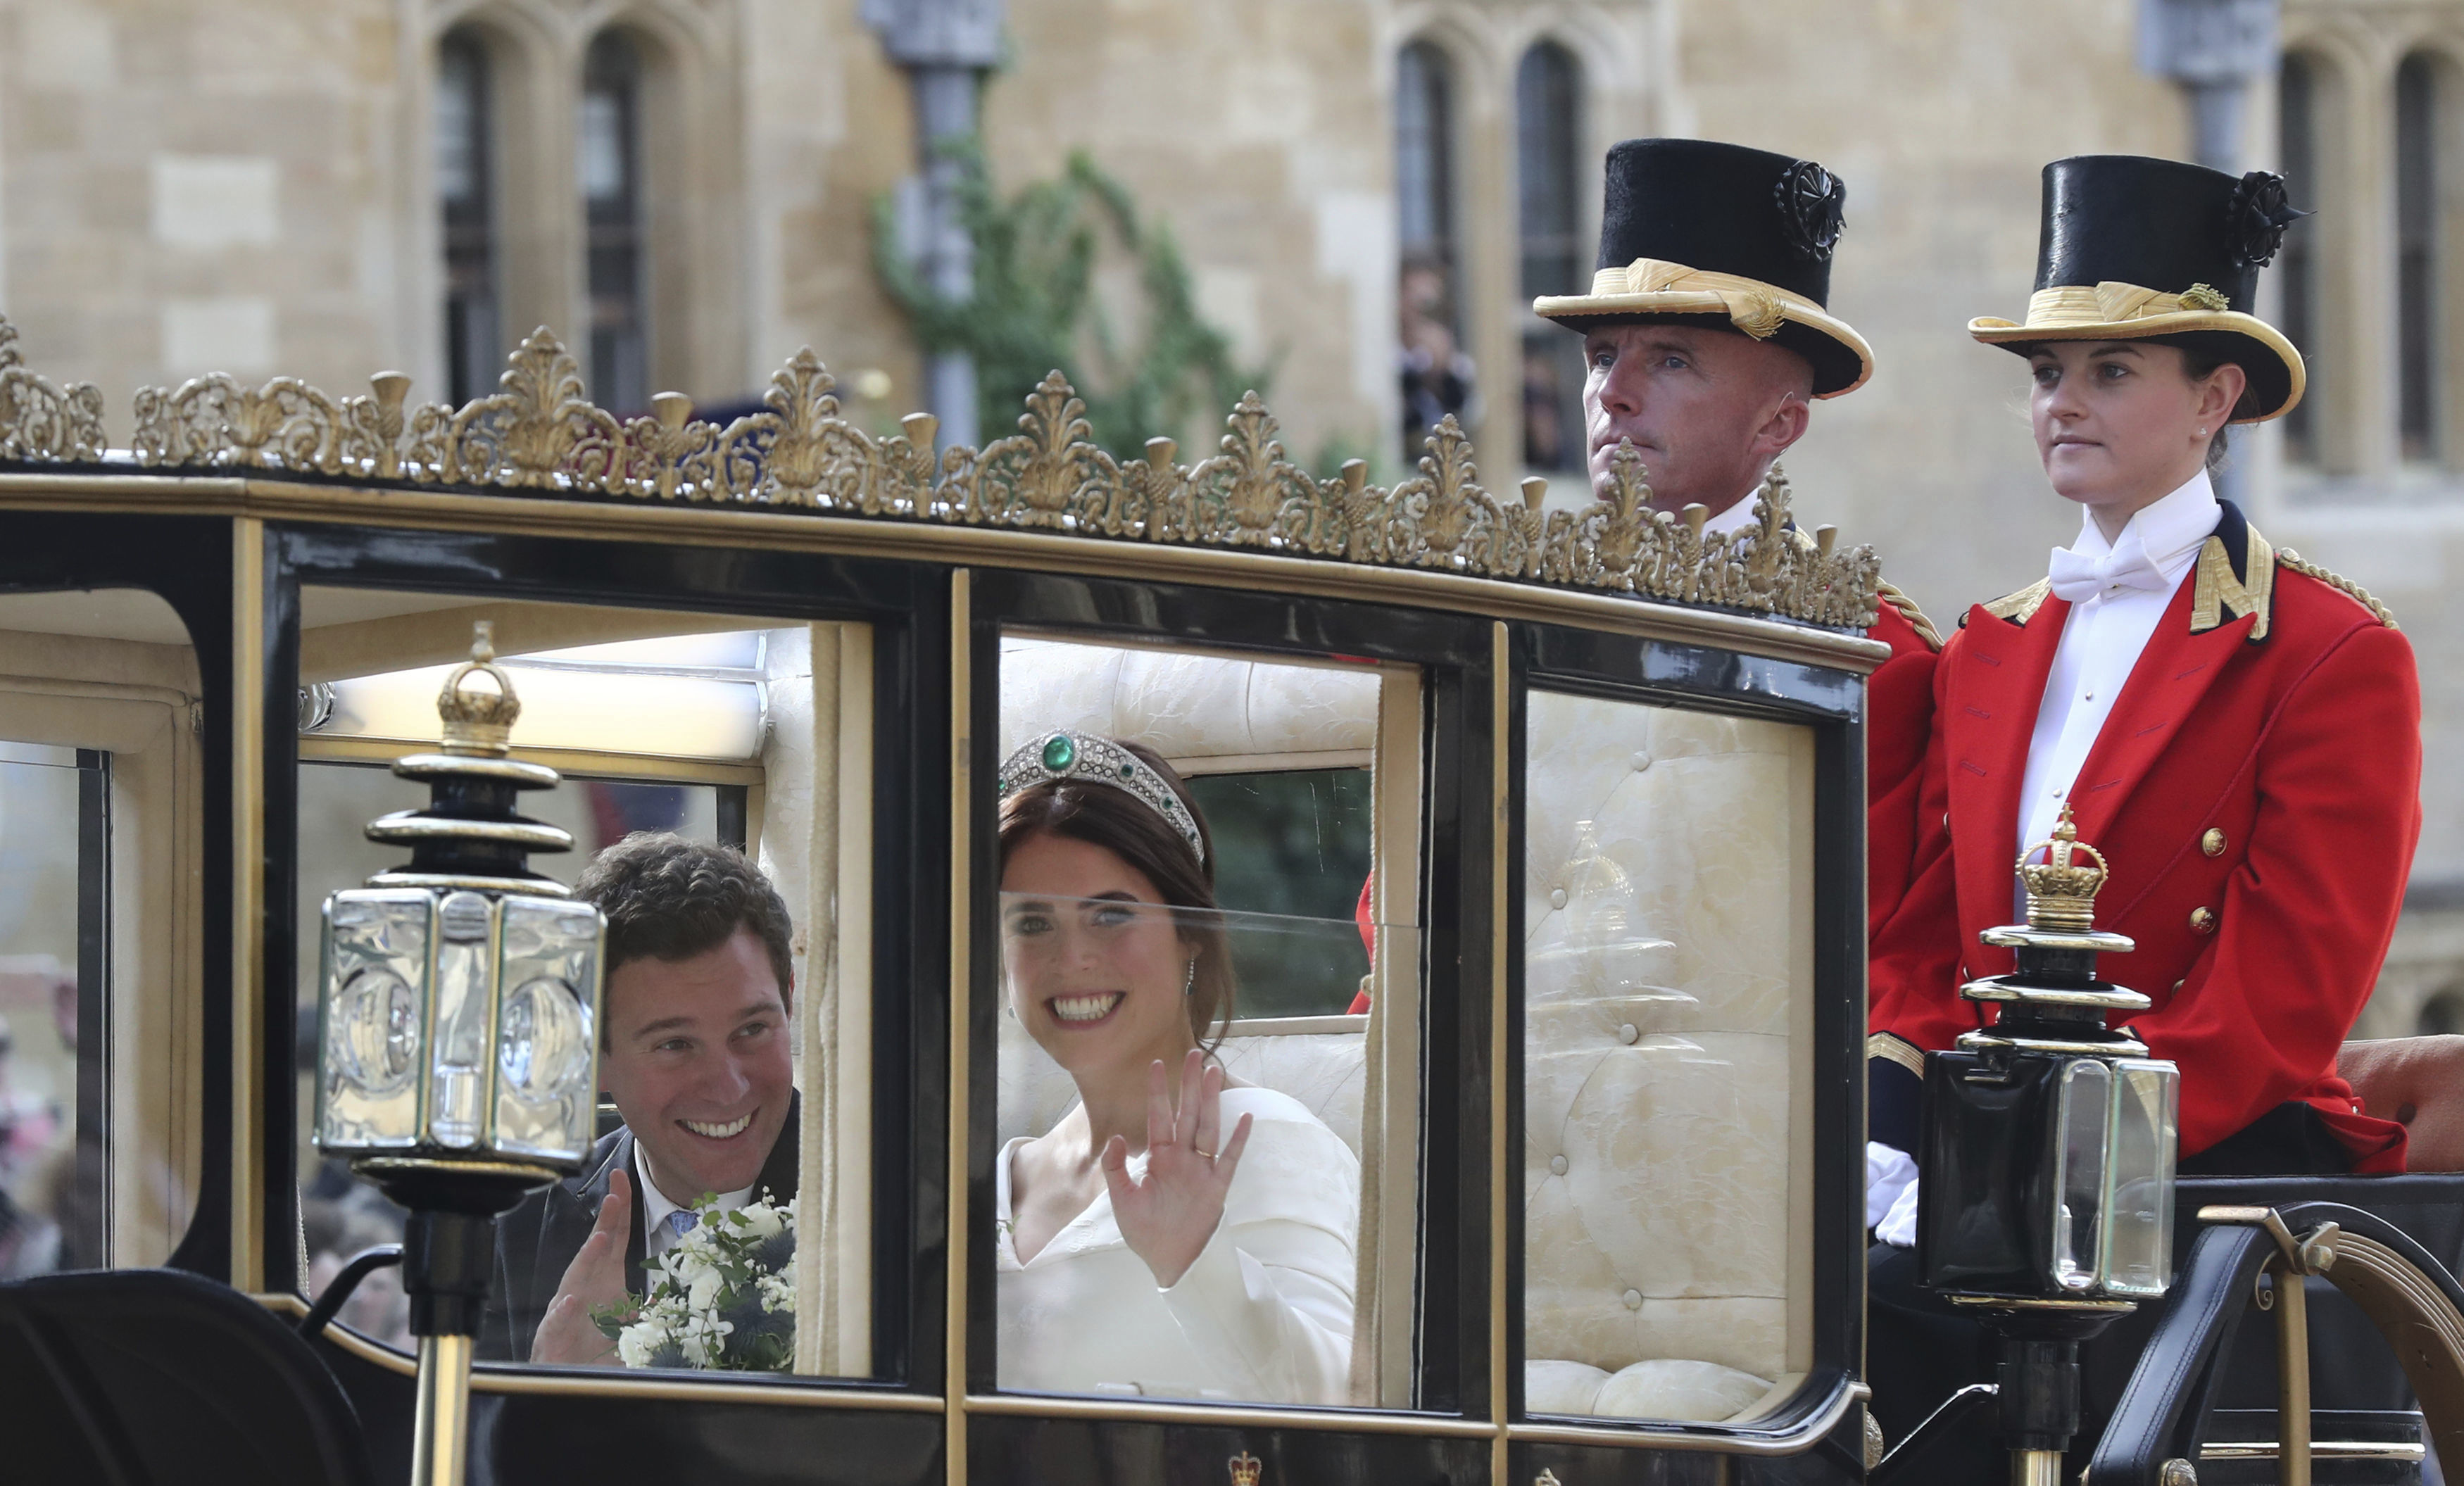 <div class='meta'><div class='origin-logo' data-origin='none'></div><span class='caption-text' data-credit='Gareth Fuller/Pool via AP'>Britain's Princess Eugenie of York, right, and her husband Jack Brooksbank travel in the Scottish State Coach following their wedding at St George's Chapel, Windsor Castle.</span></div>